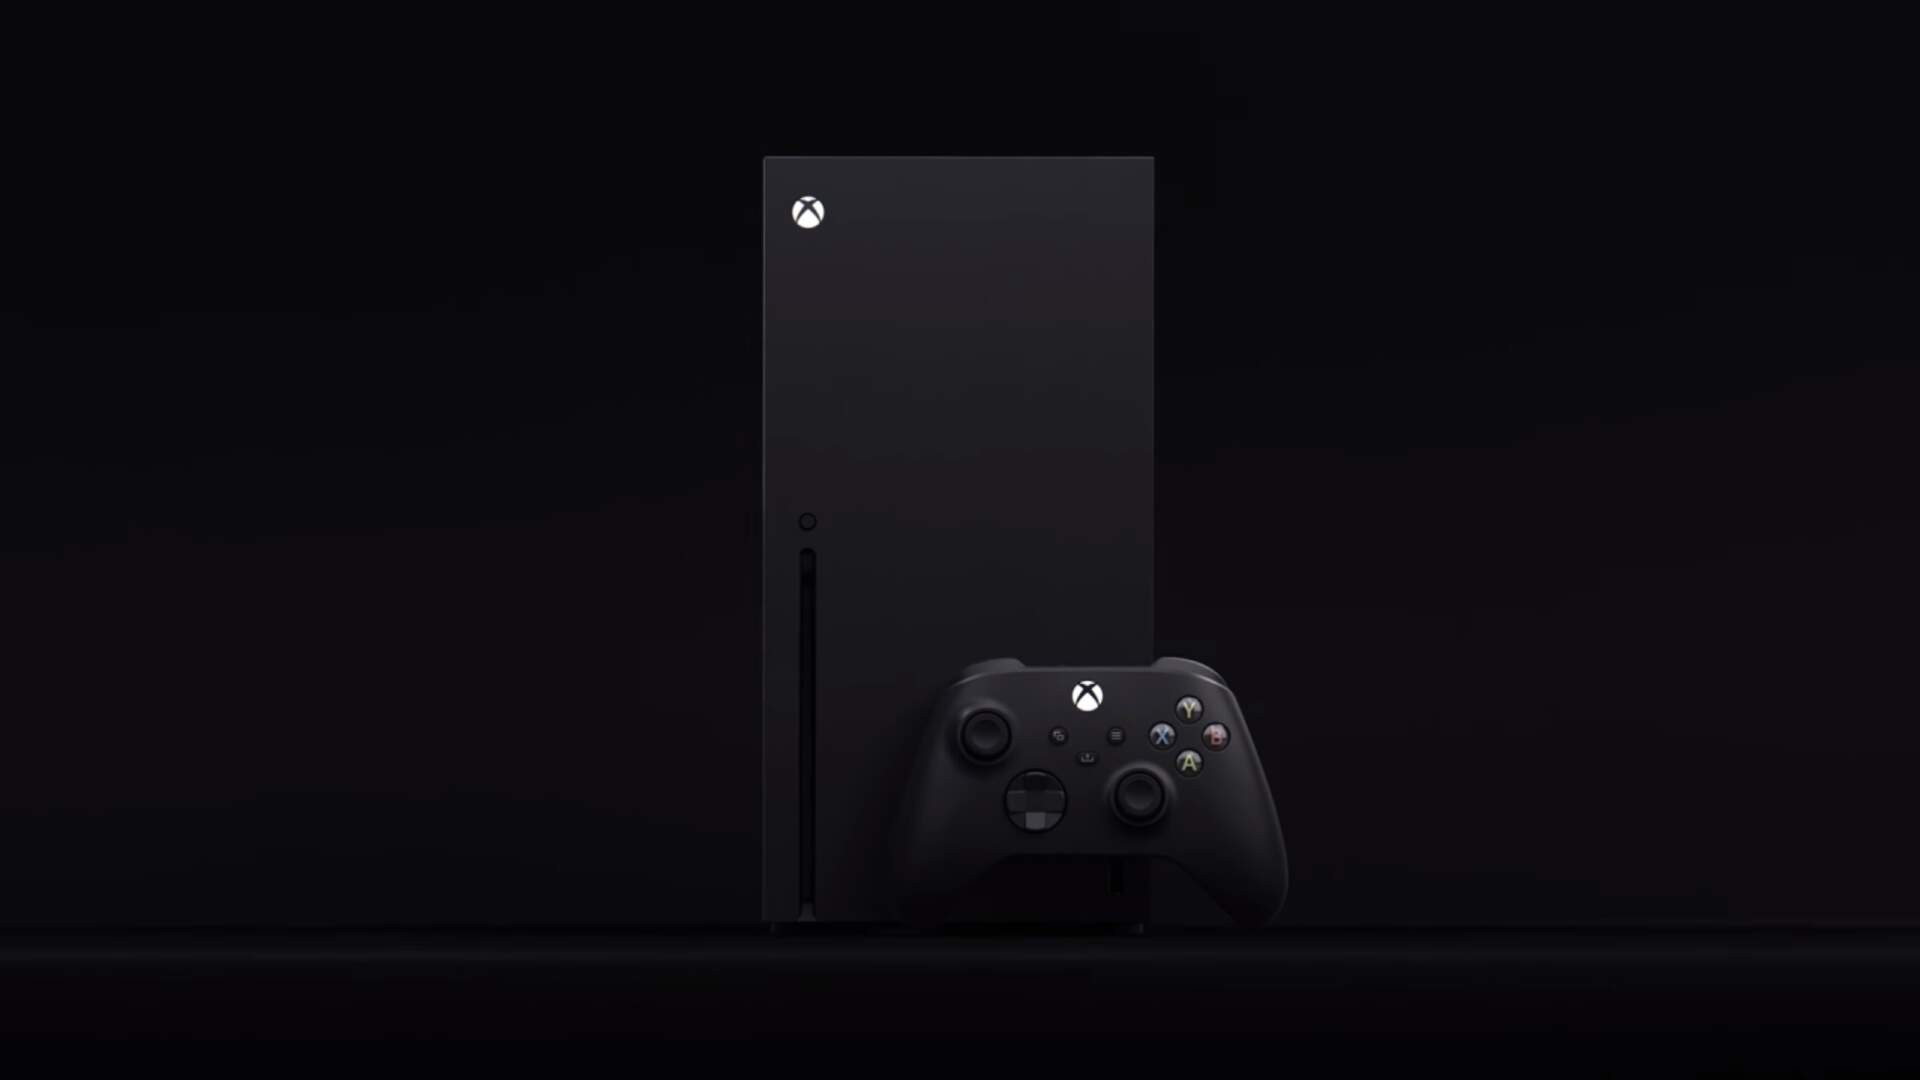 Xbox Series X Will Let You Pick Up Games Right Where You Left Off on Xbox One